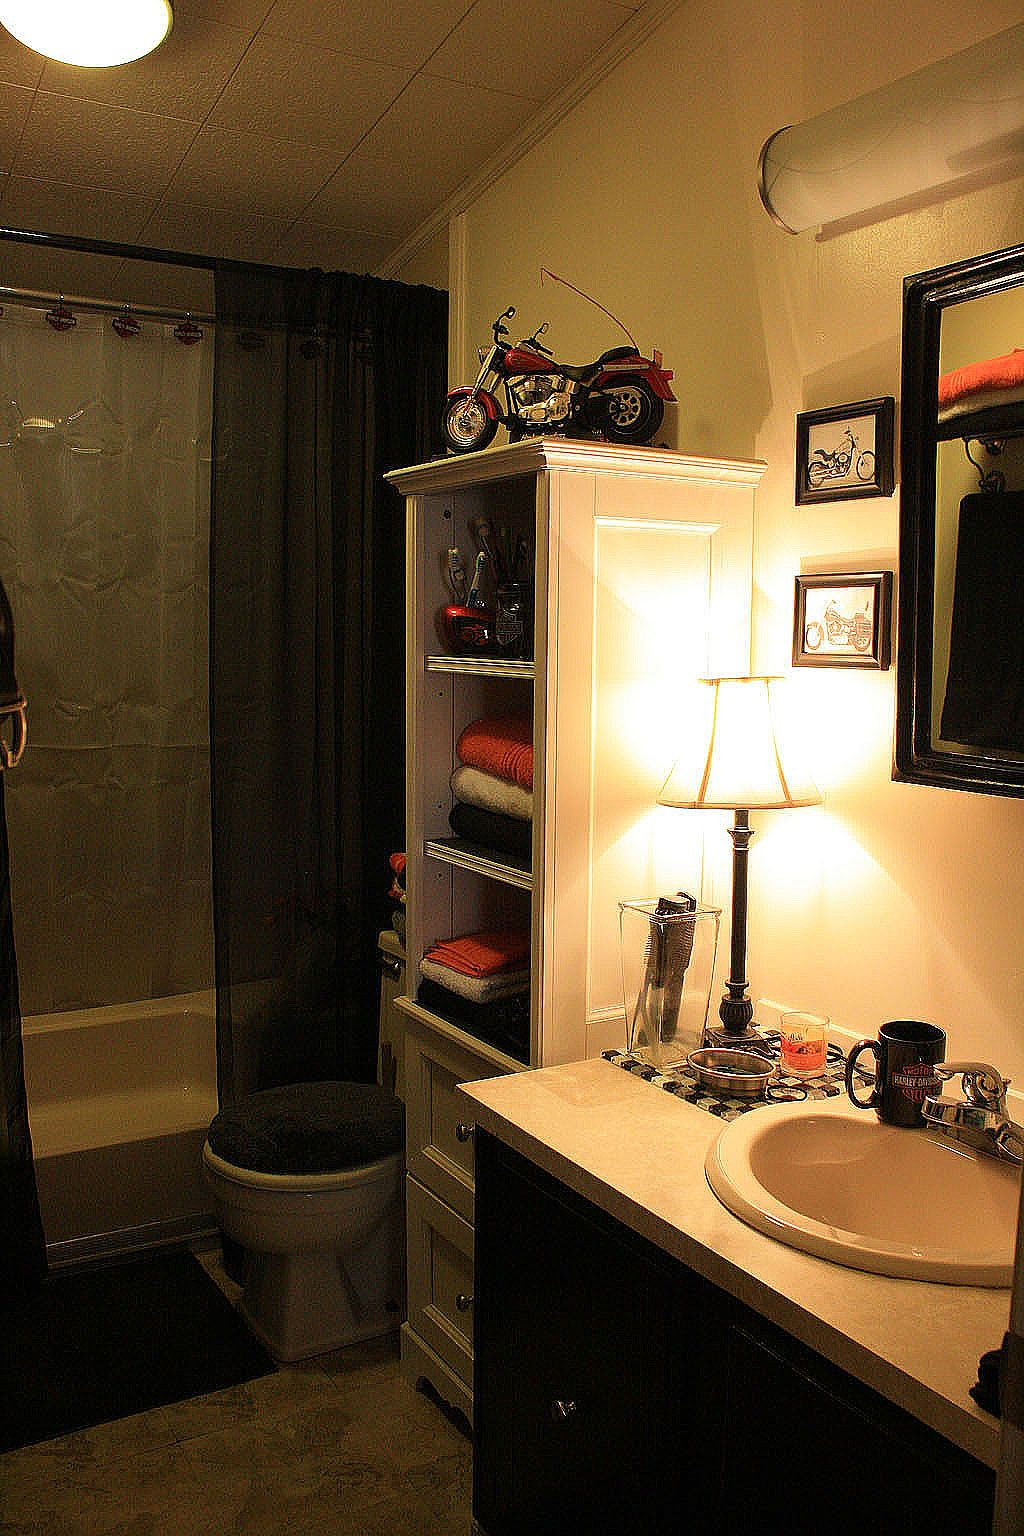 Harley Davidson Bathroom On A Budget Even The Light Fixtures Were On Clearance And Rocked